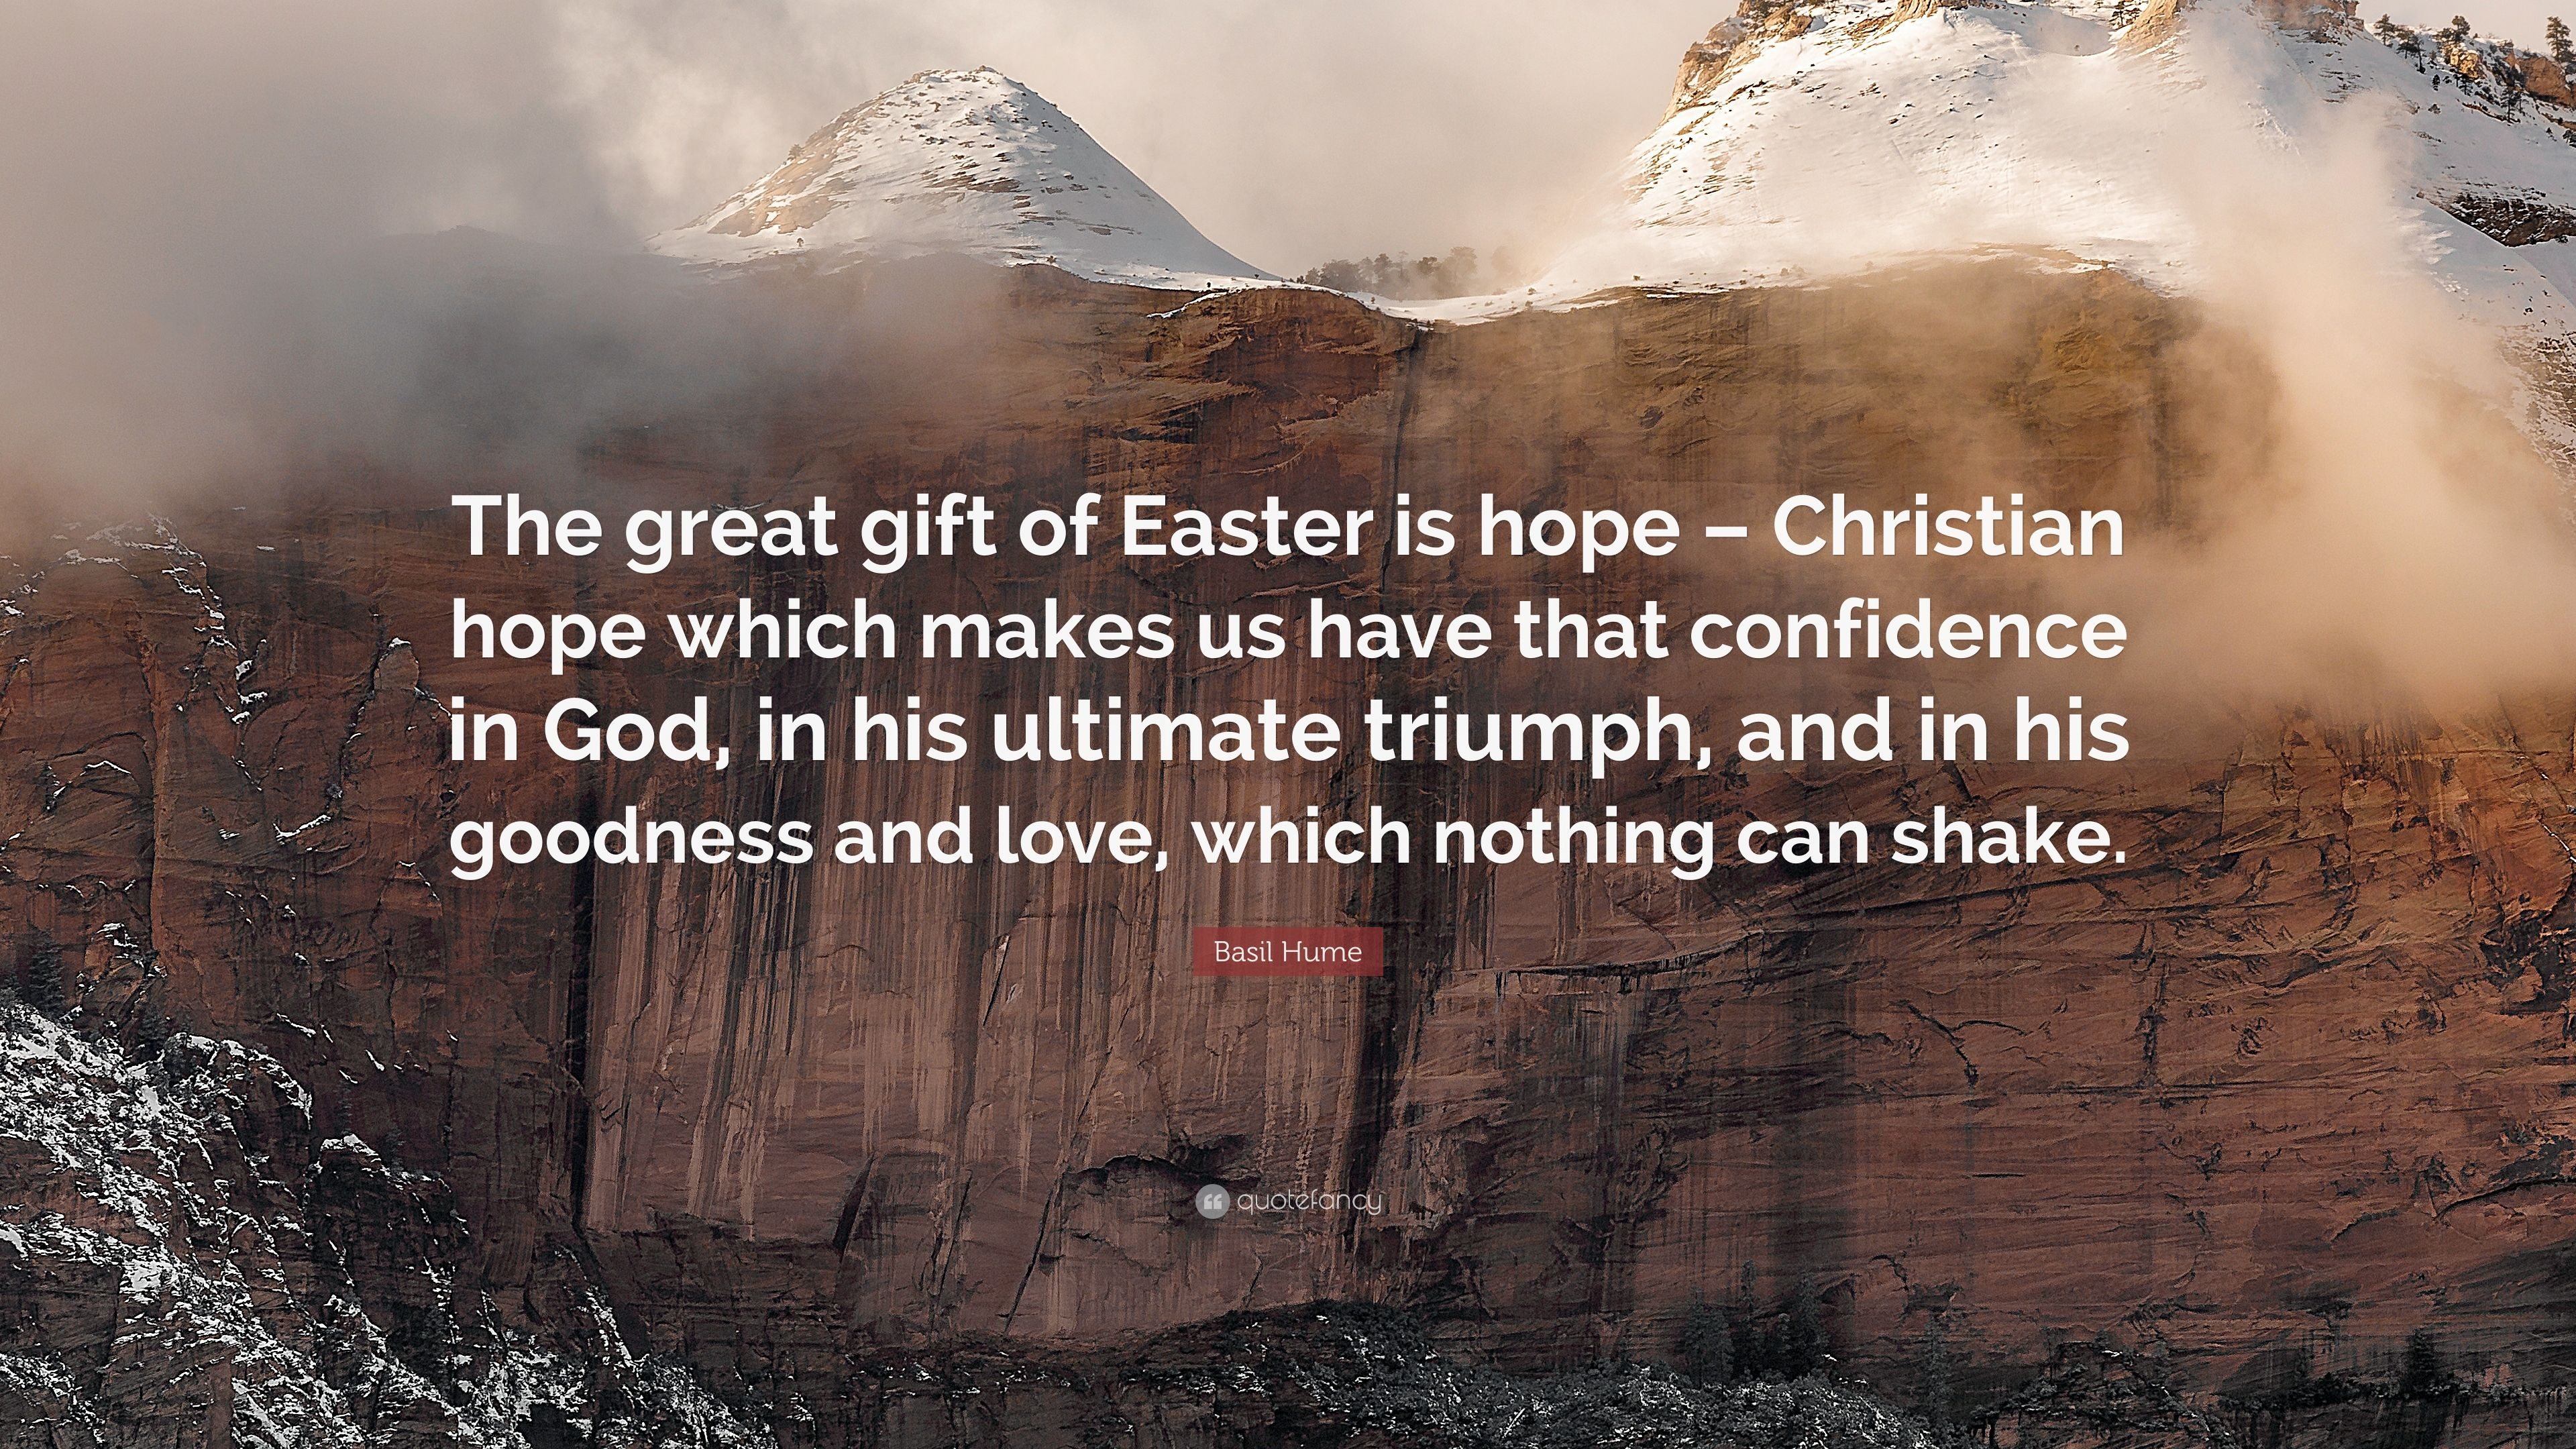 Basil hume quote the great gift of easter is hope christian hope basil hume quote the great gift of easter is hope christian hope which negle Image collections